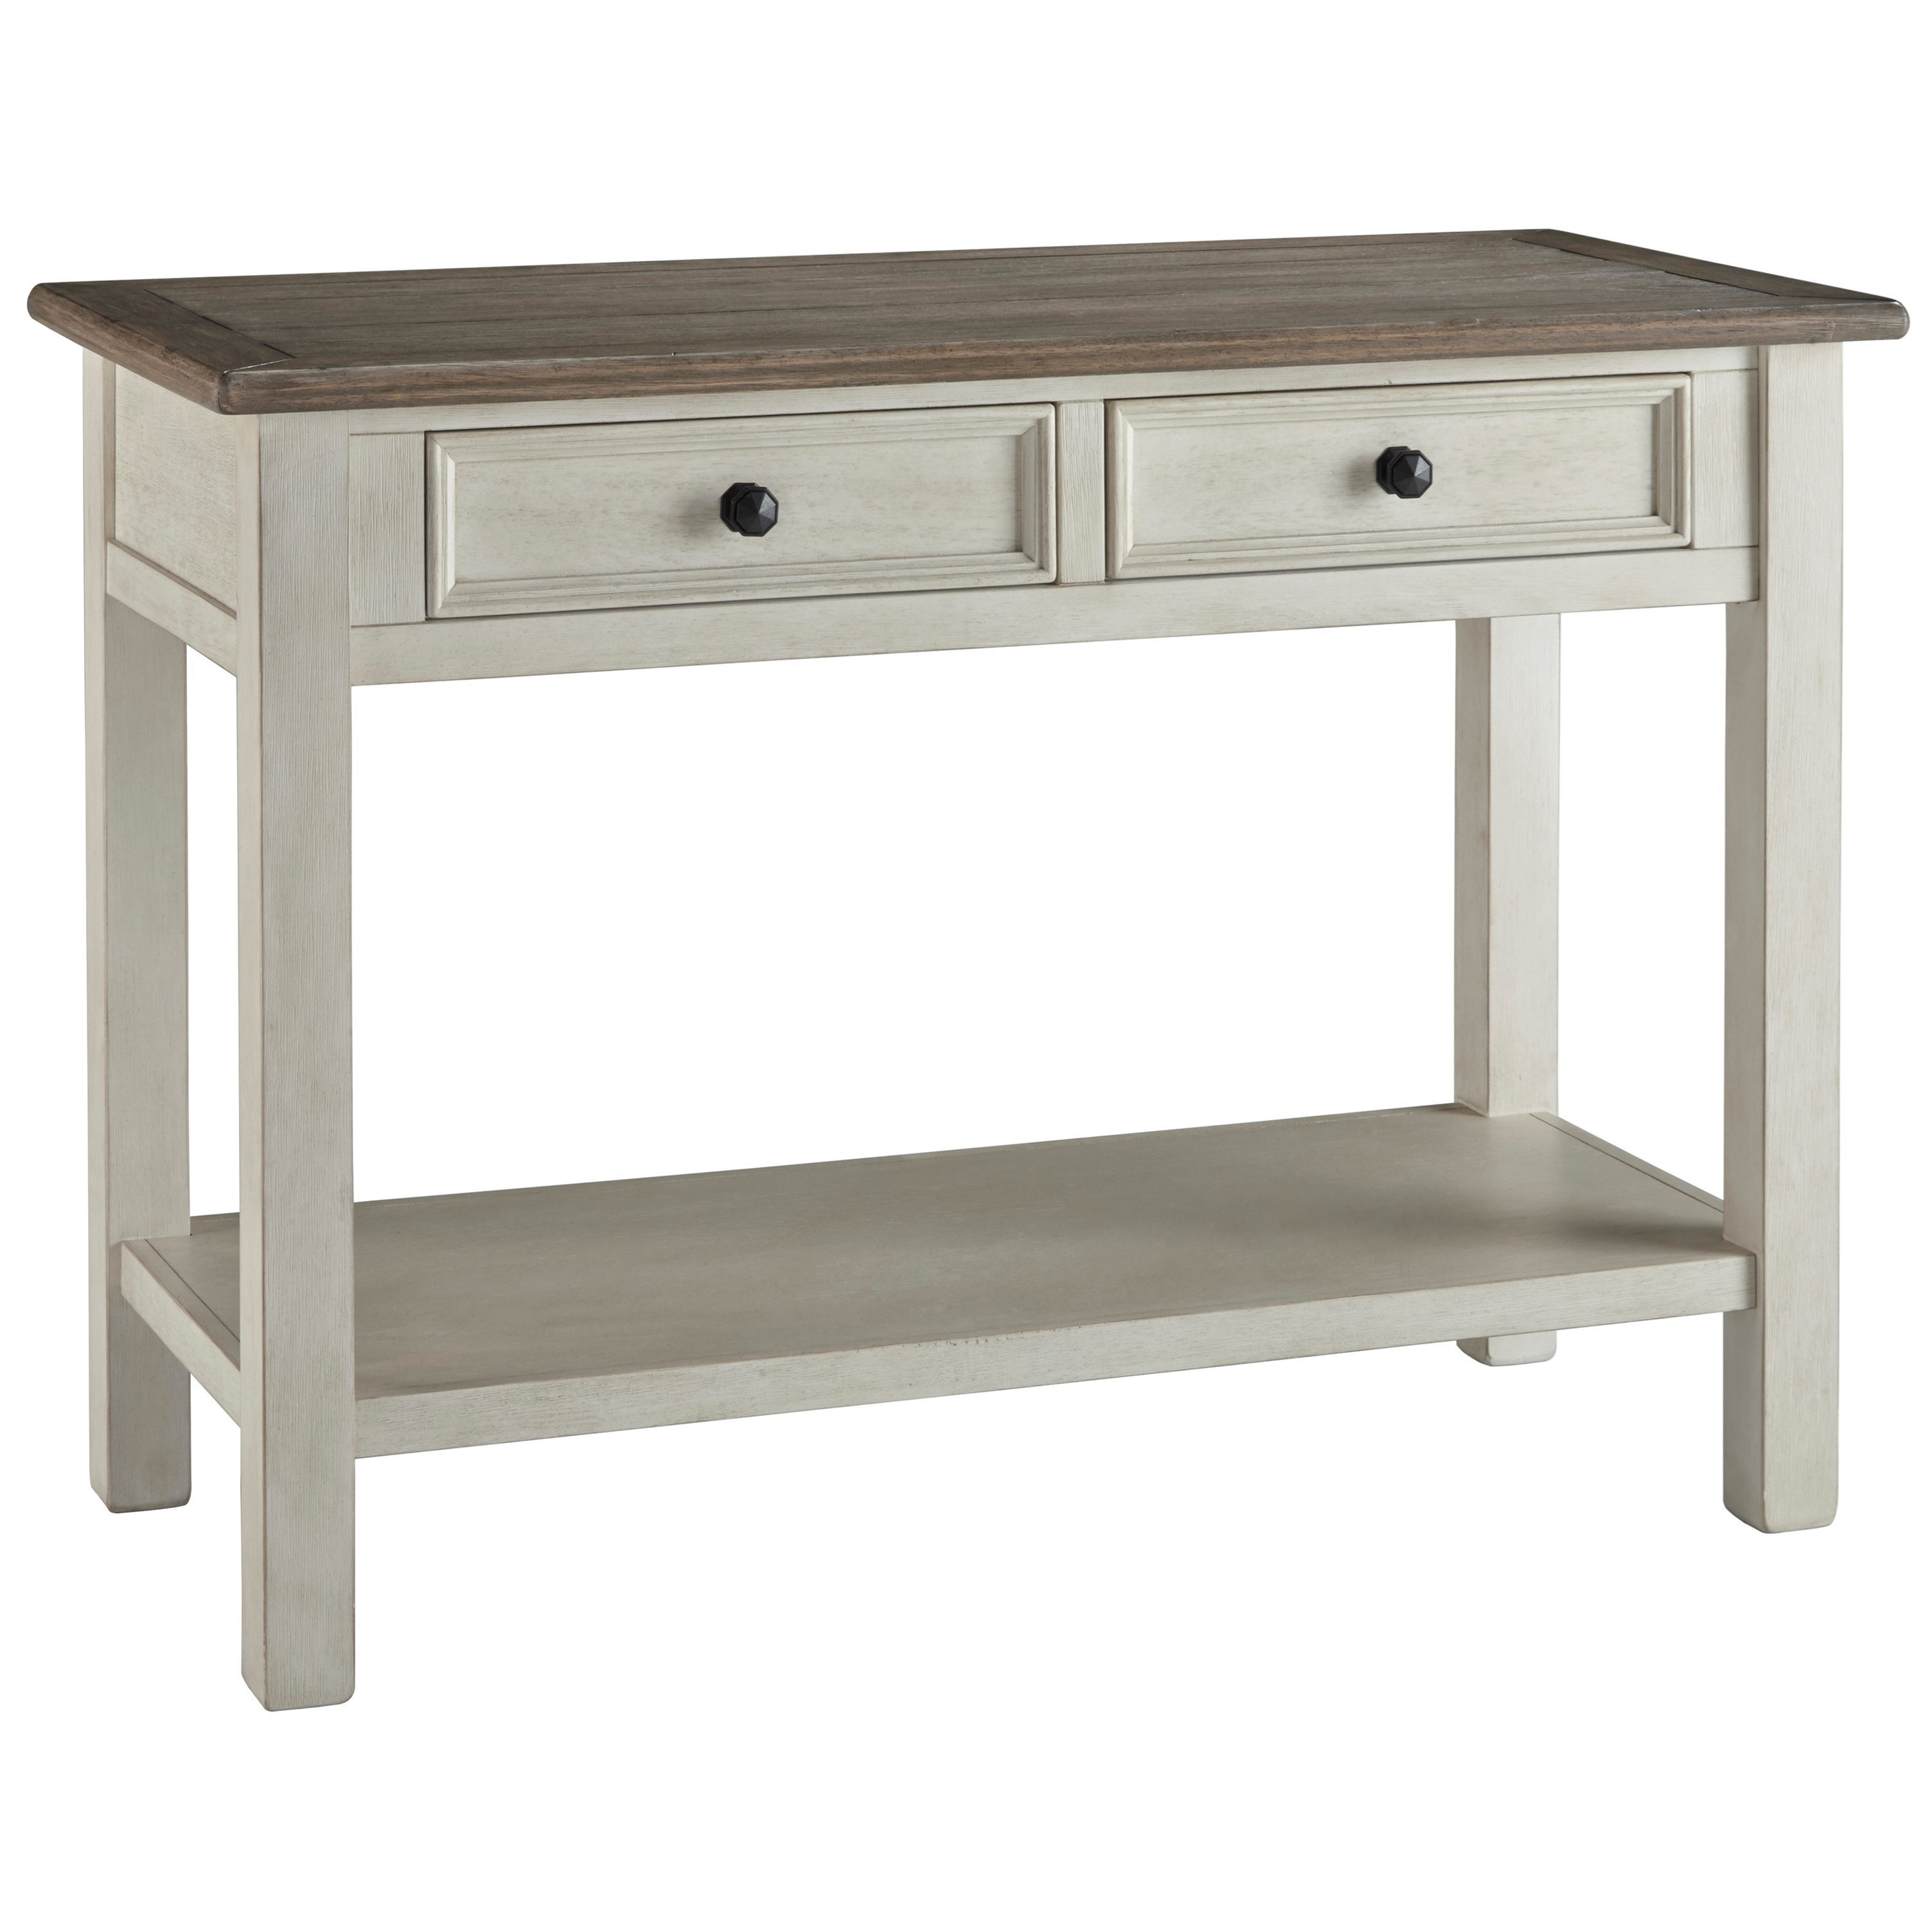 Sofa Table with 2 Drawers